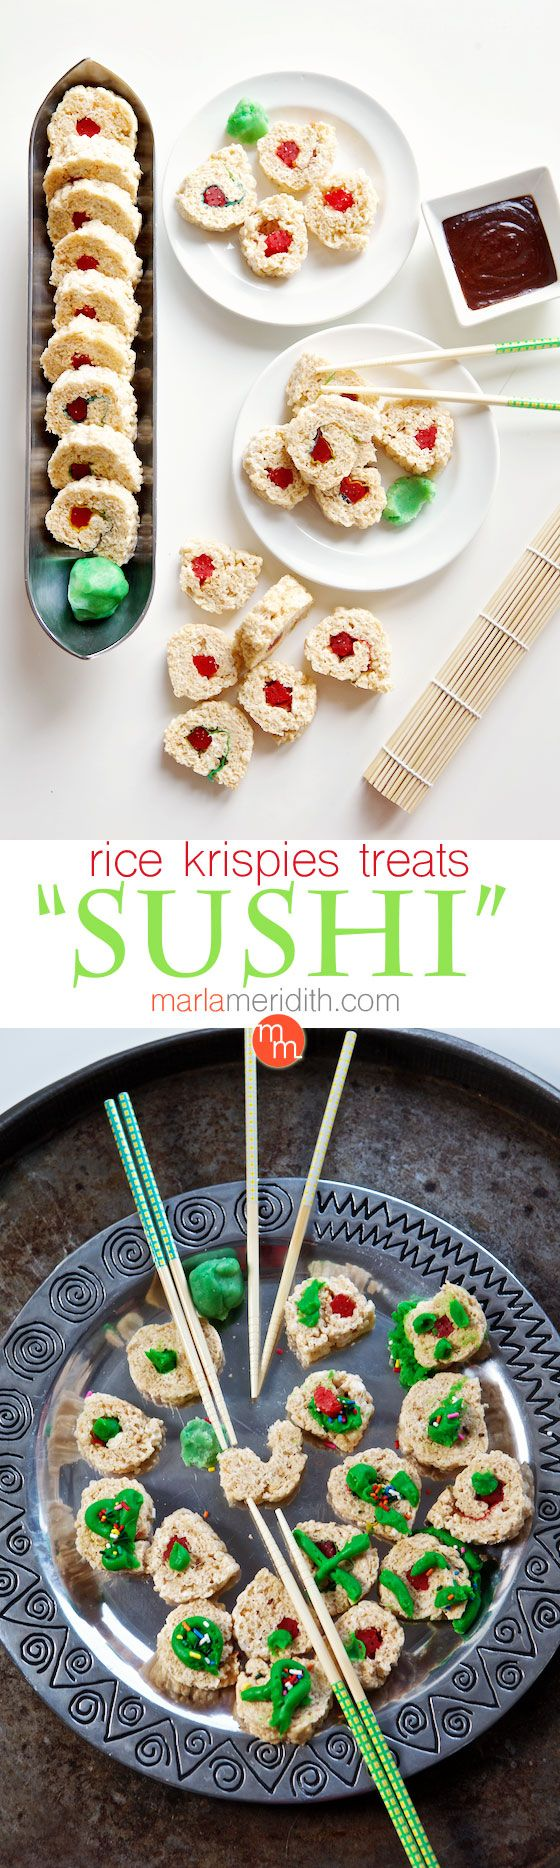 "Rice Krispies Treats ""Sushi"" 